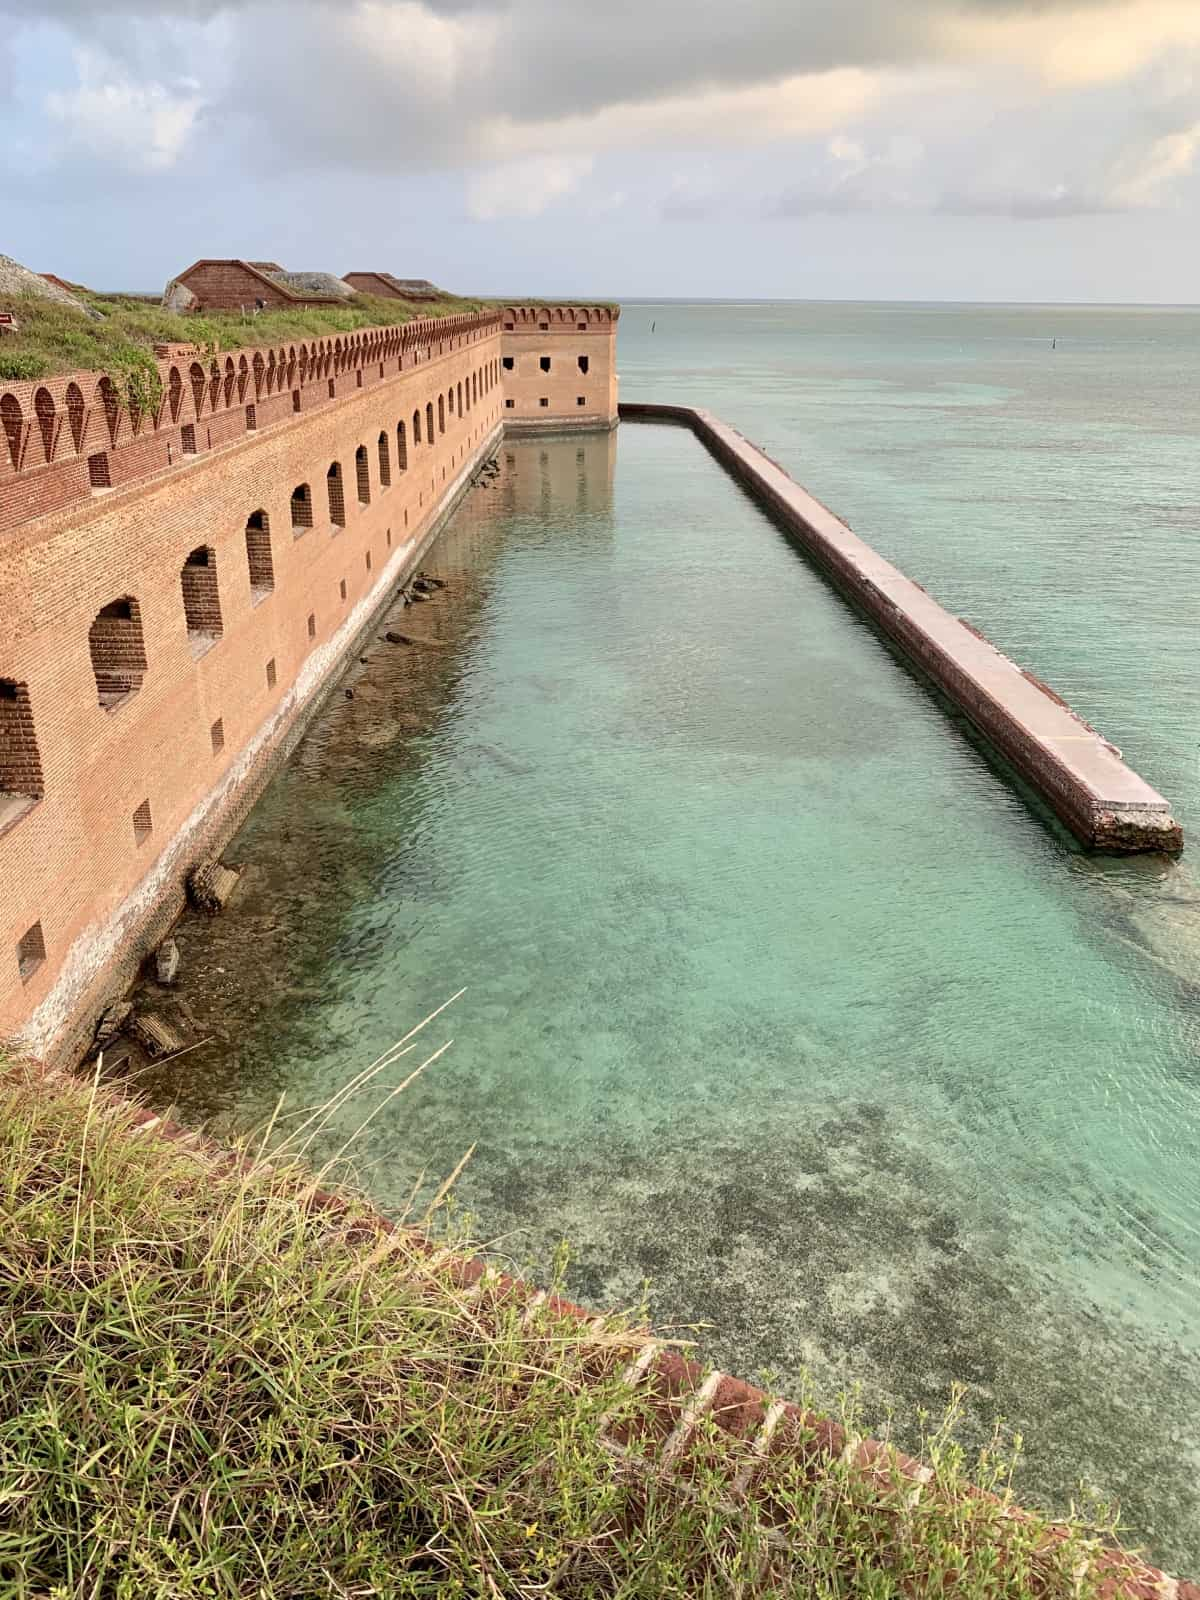 Exploring Fort Jefferson...Dry Tortugas National Park | Off the coast of Florida (70 miles west of Key West) sits this gorgeous tiny national park in the middle of the ocean, crowned with a historic masonry fort. What to expect when you visit Fort Jefferson, what to see, things to do at Dry Tortugas in the USA. From history to photography to bird watching to snorkeling, this is a must-do if you're visiting Key West. #florida #nps #drytortugas #nationalpark #fortjefferson